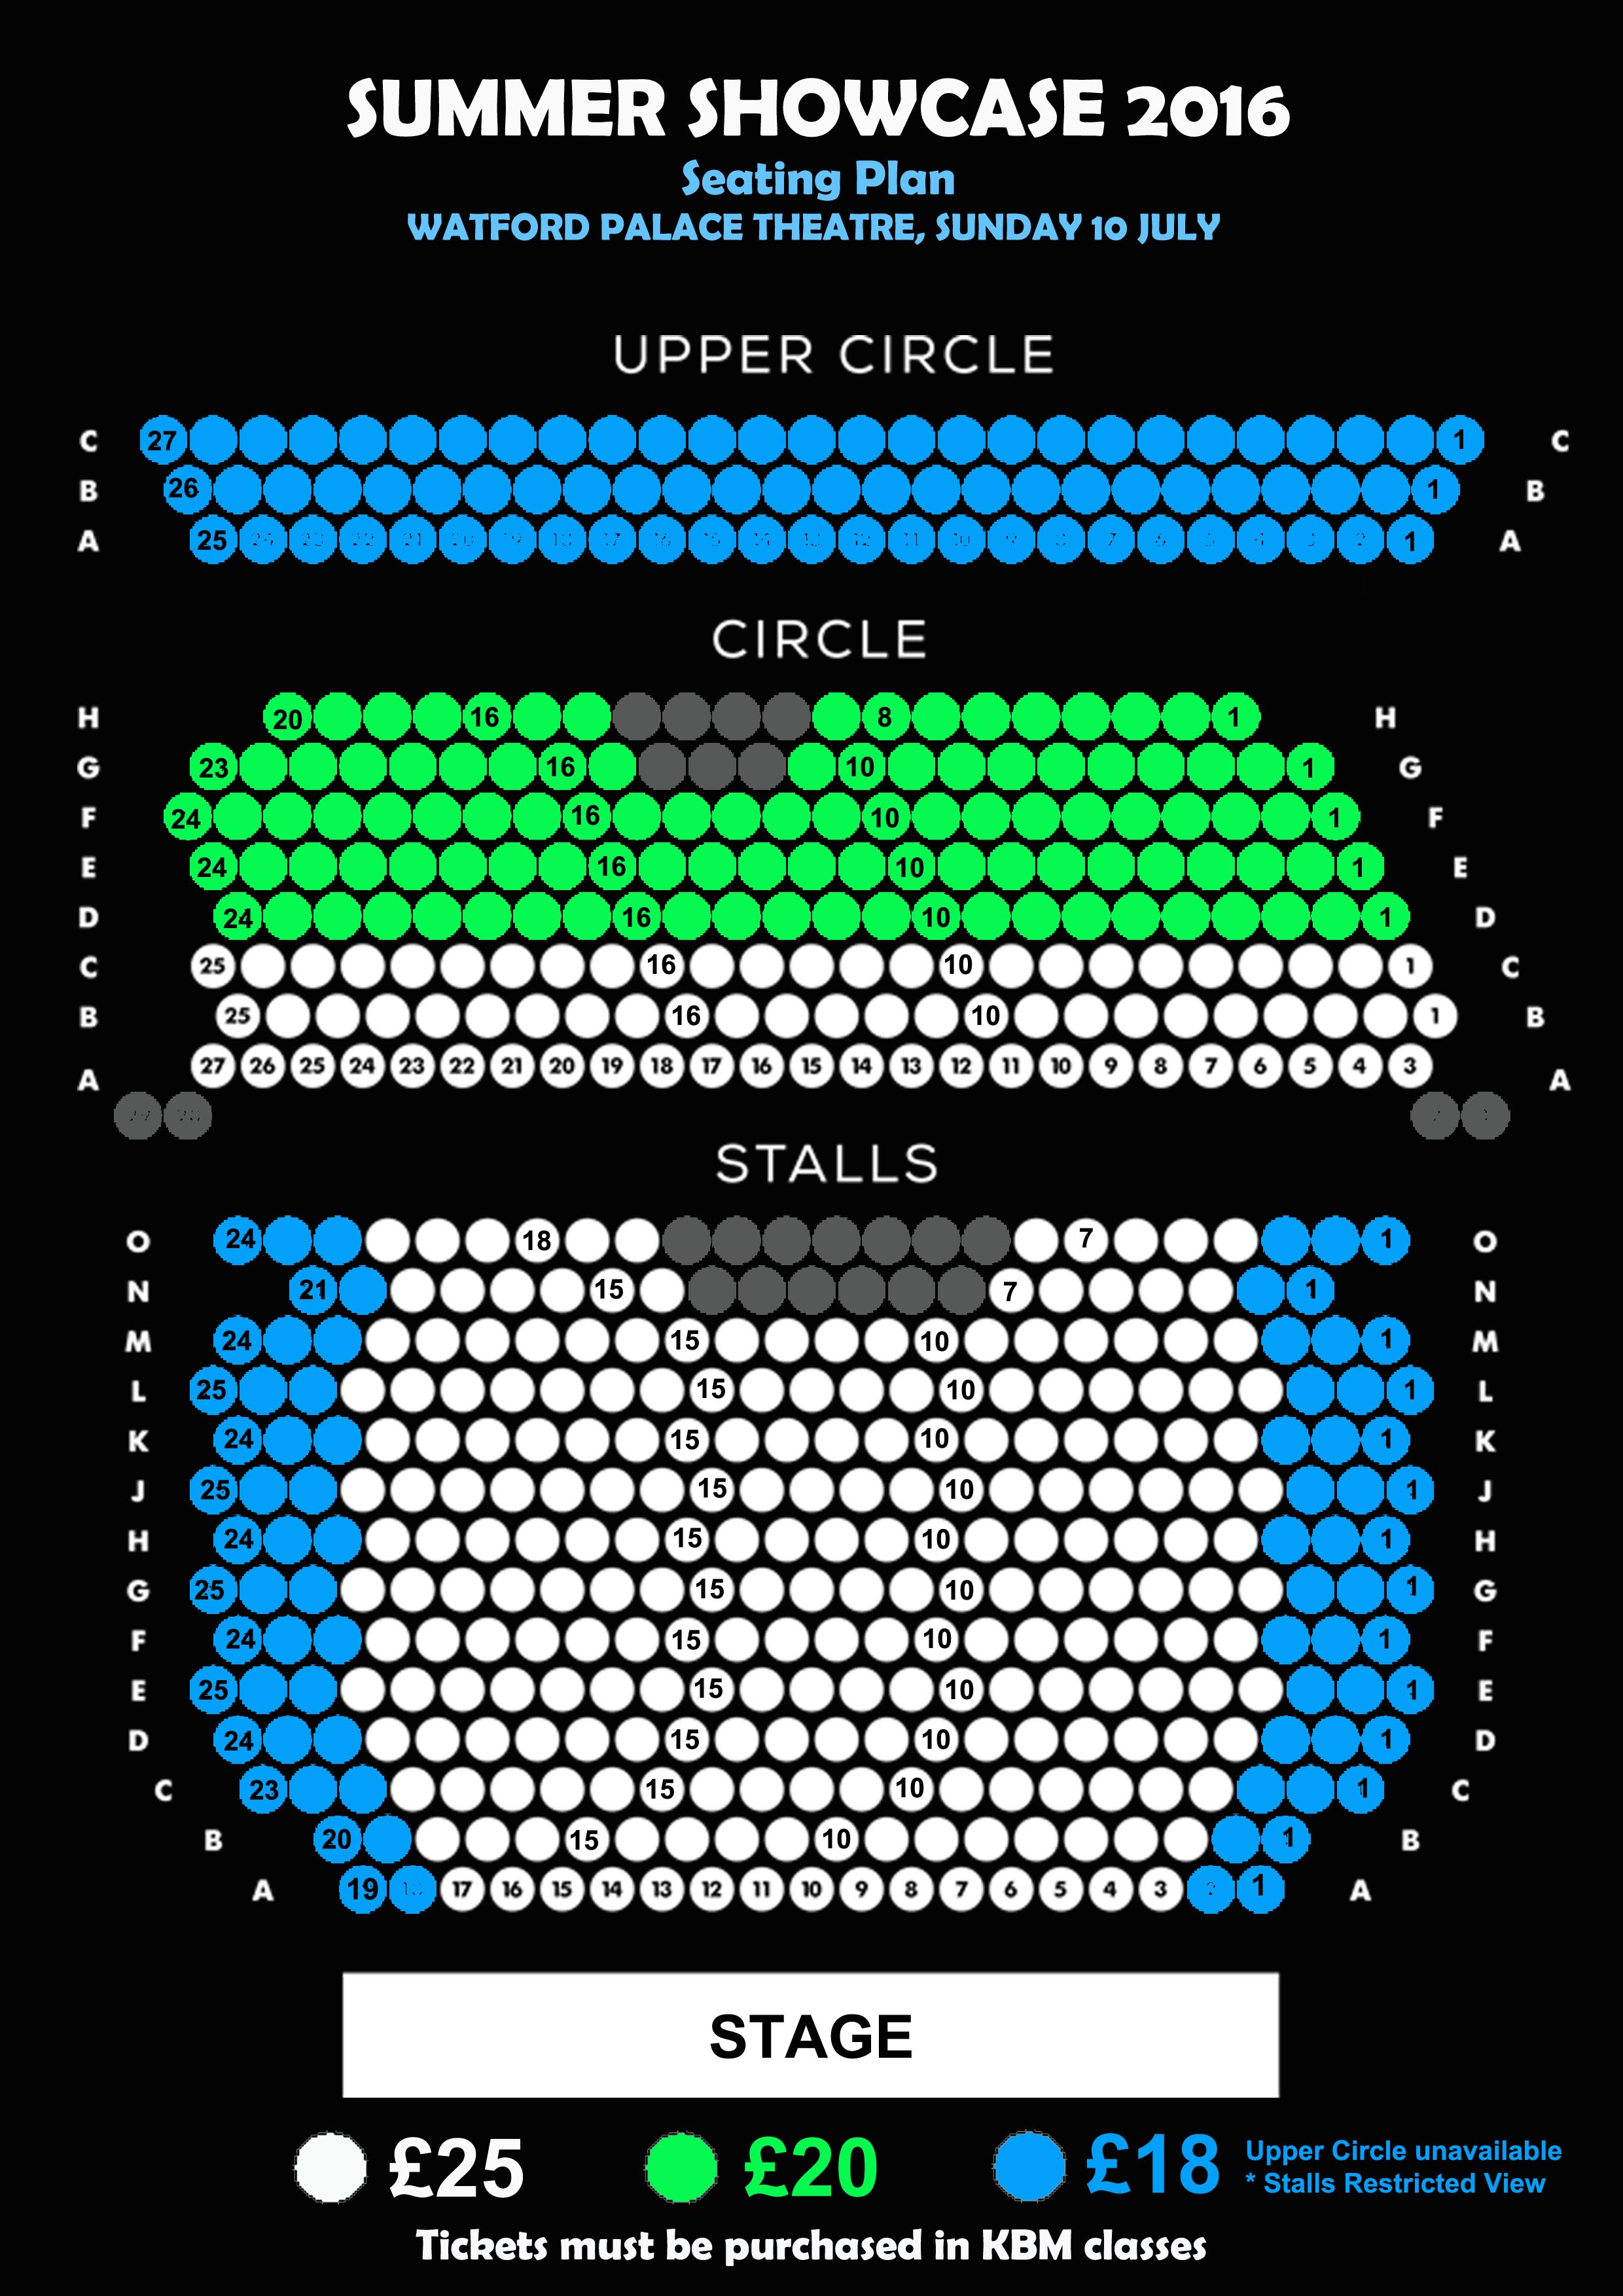 KBM SUMMER SHOWCASE seatingplan